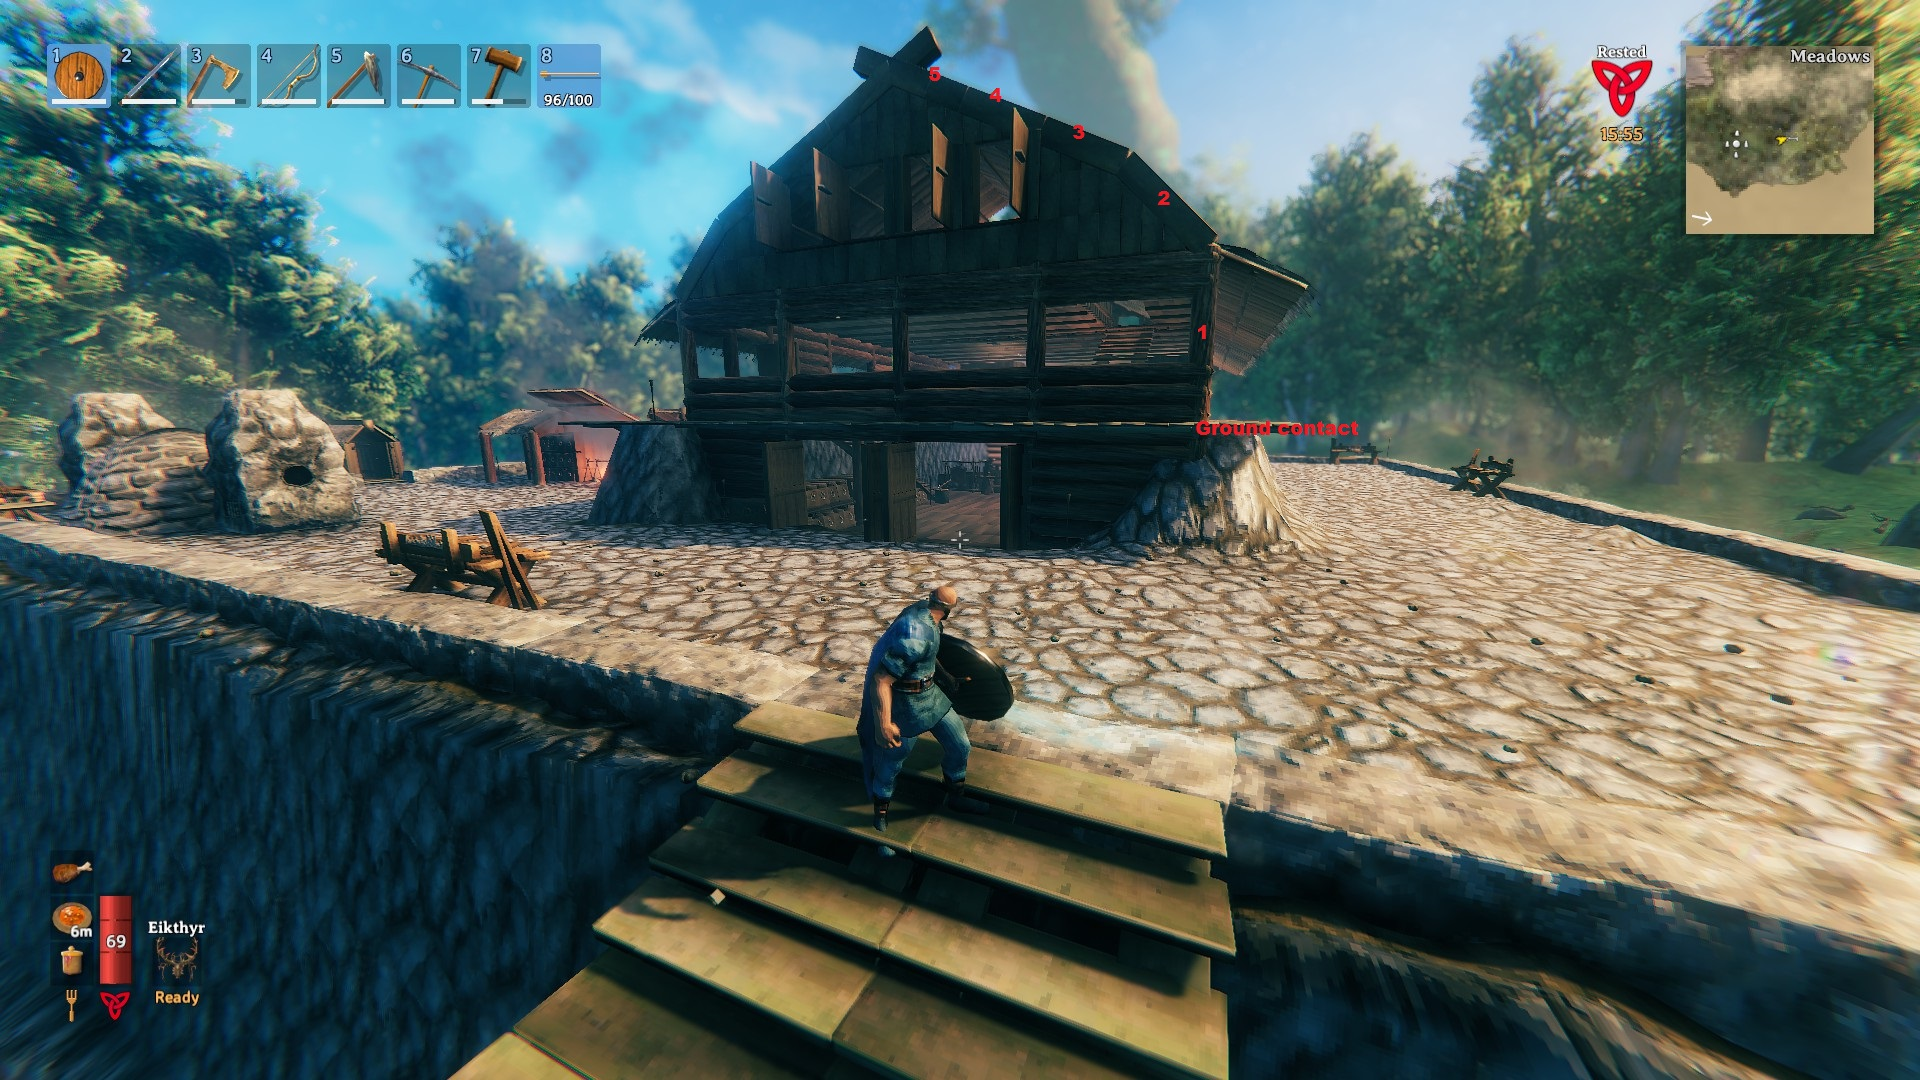 Valheim - Game Mechanics and Gameplay Tips for Beginners - How to build - CA2C3D8